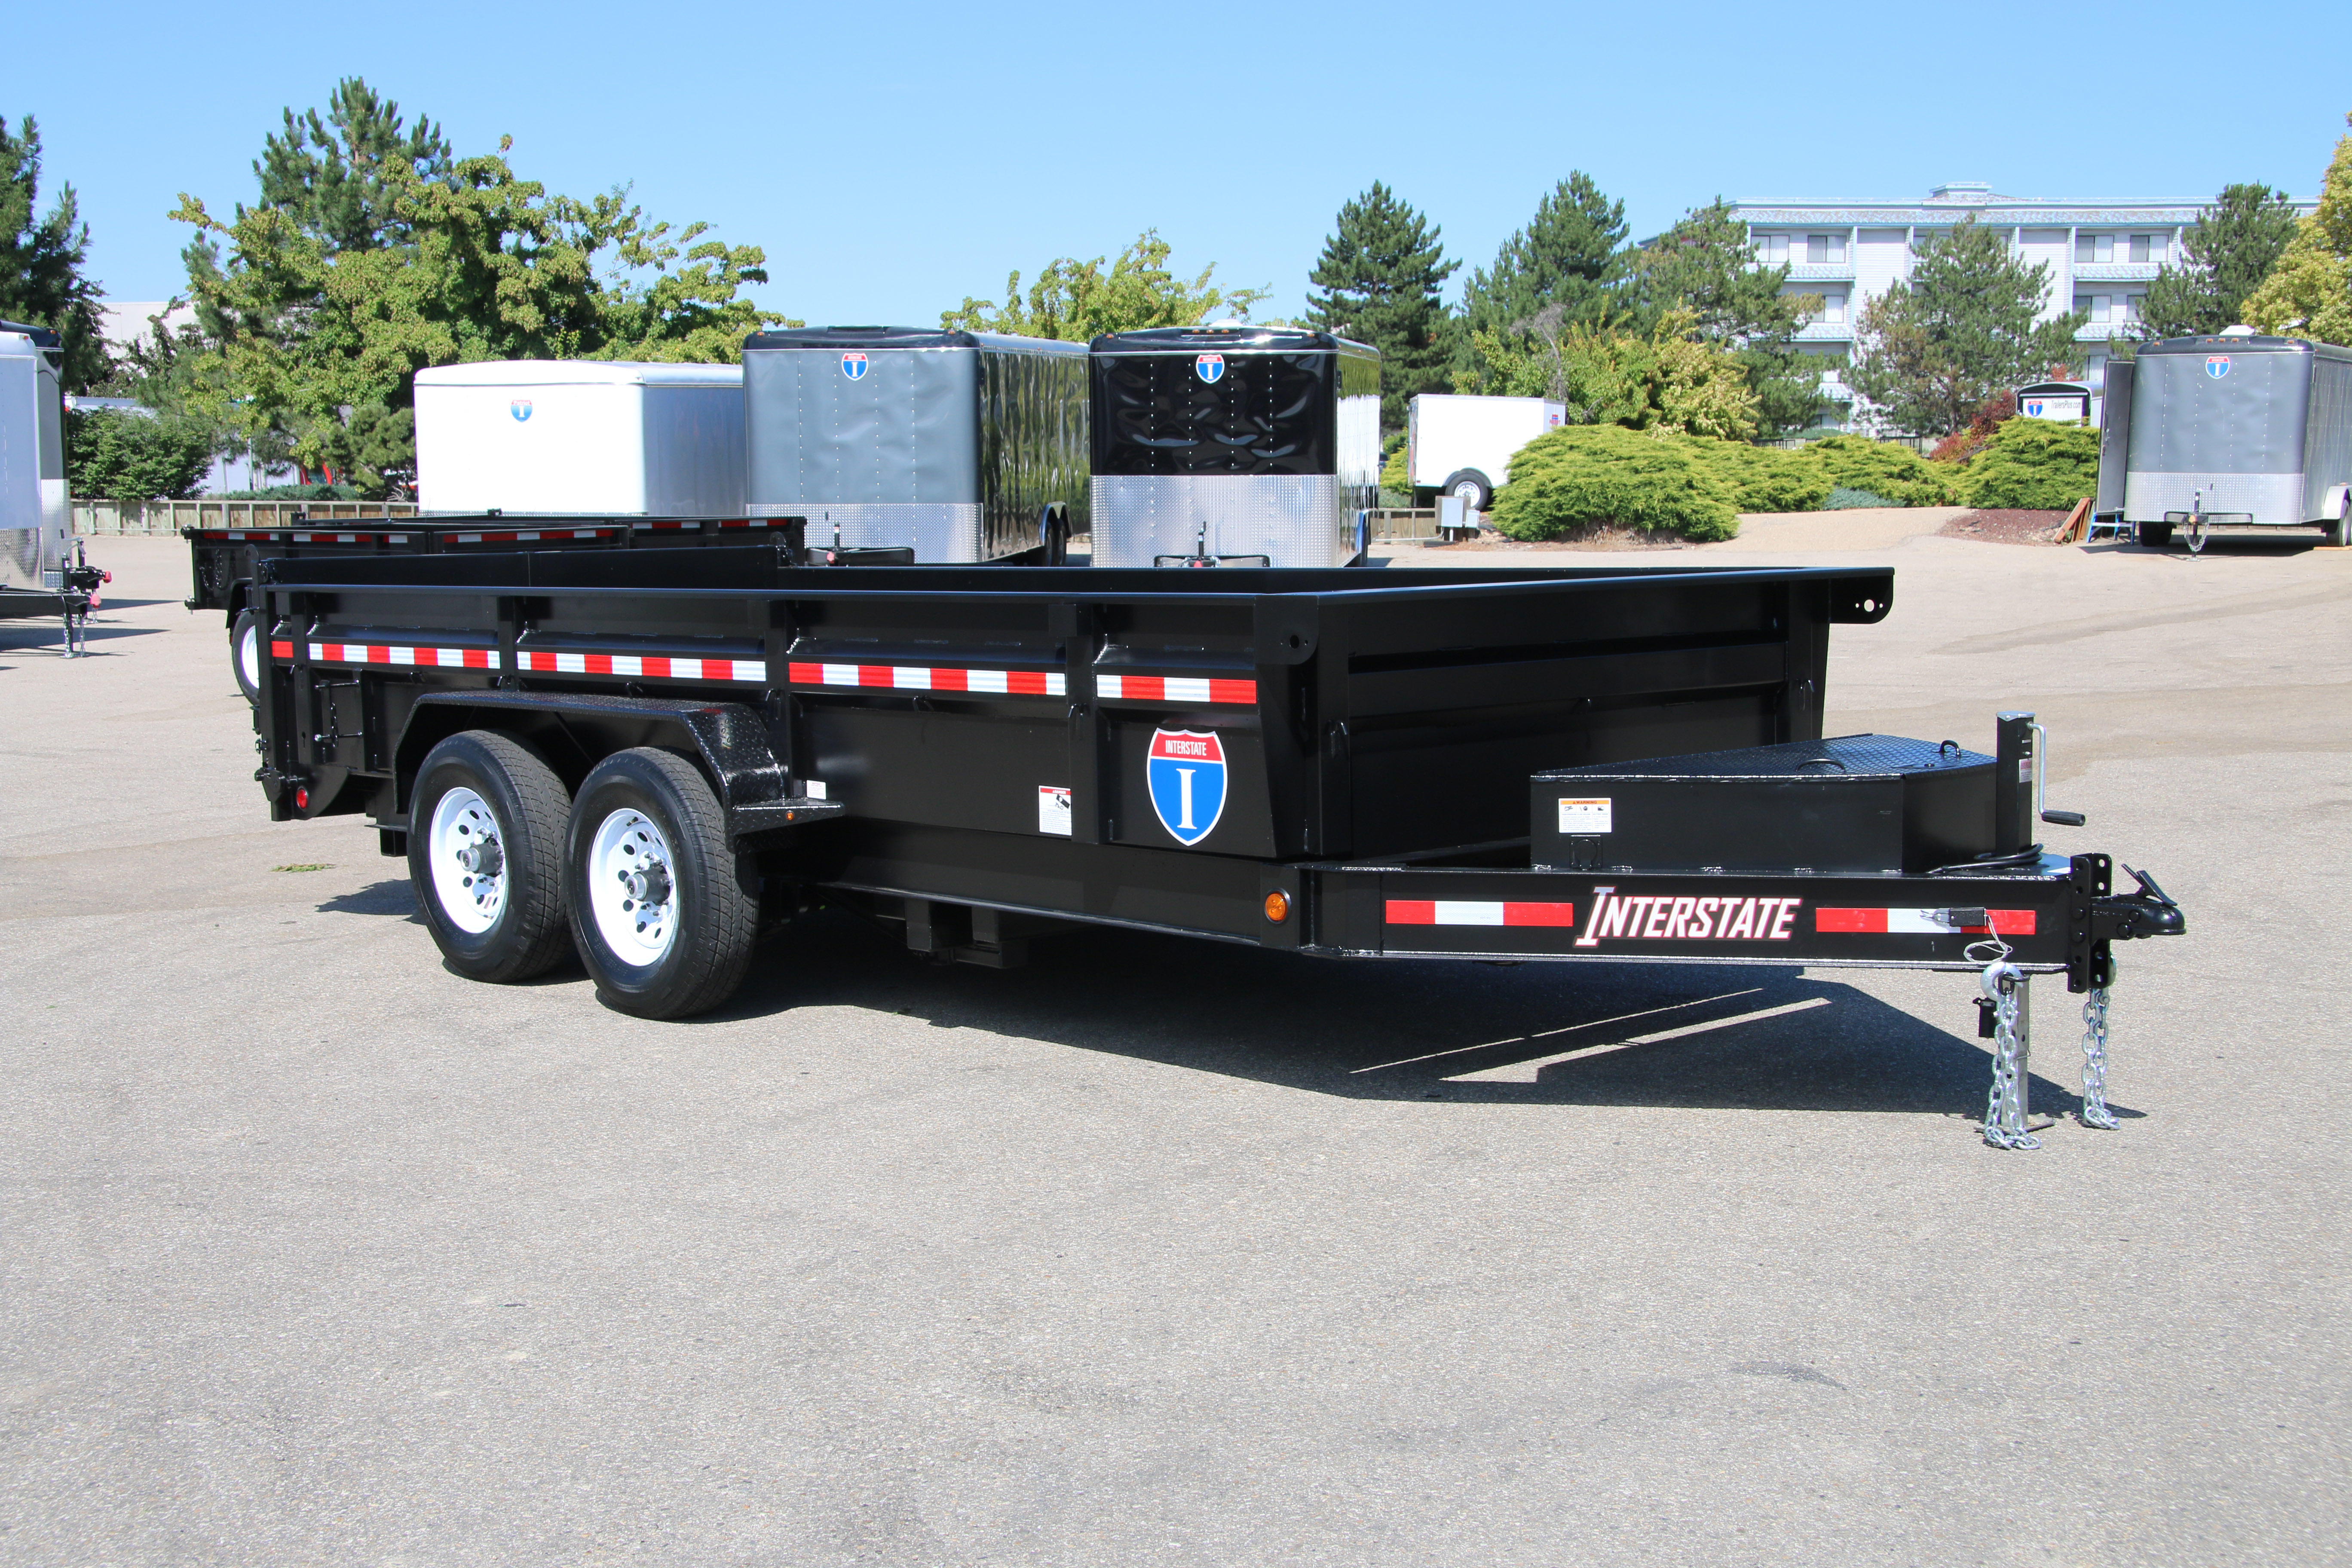 TrailersPlus 6380 Automall Parkway Gilroy, CA Trailer-Sales